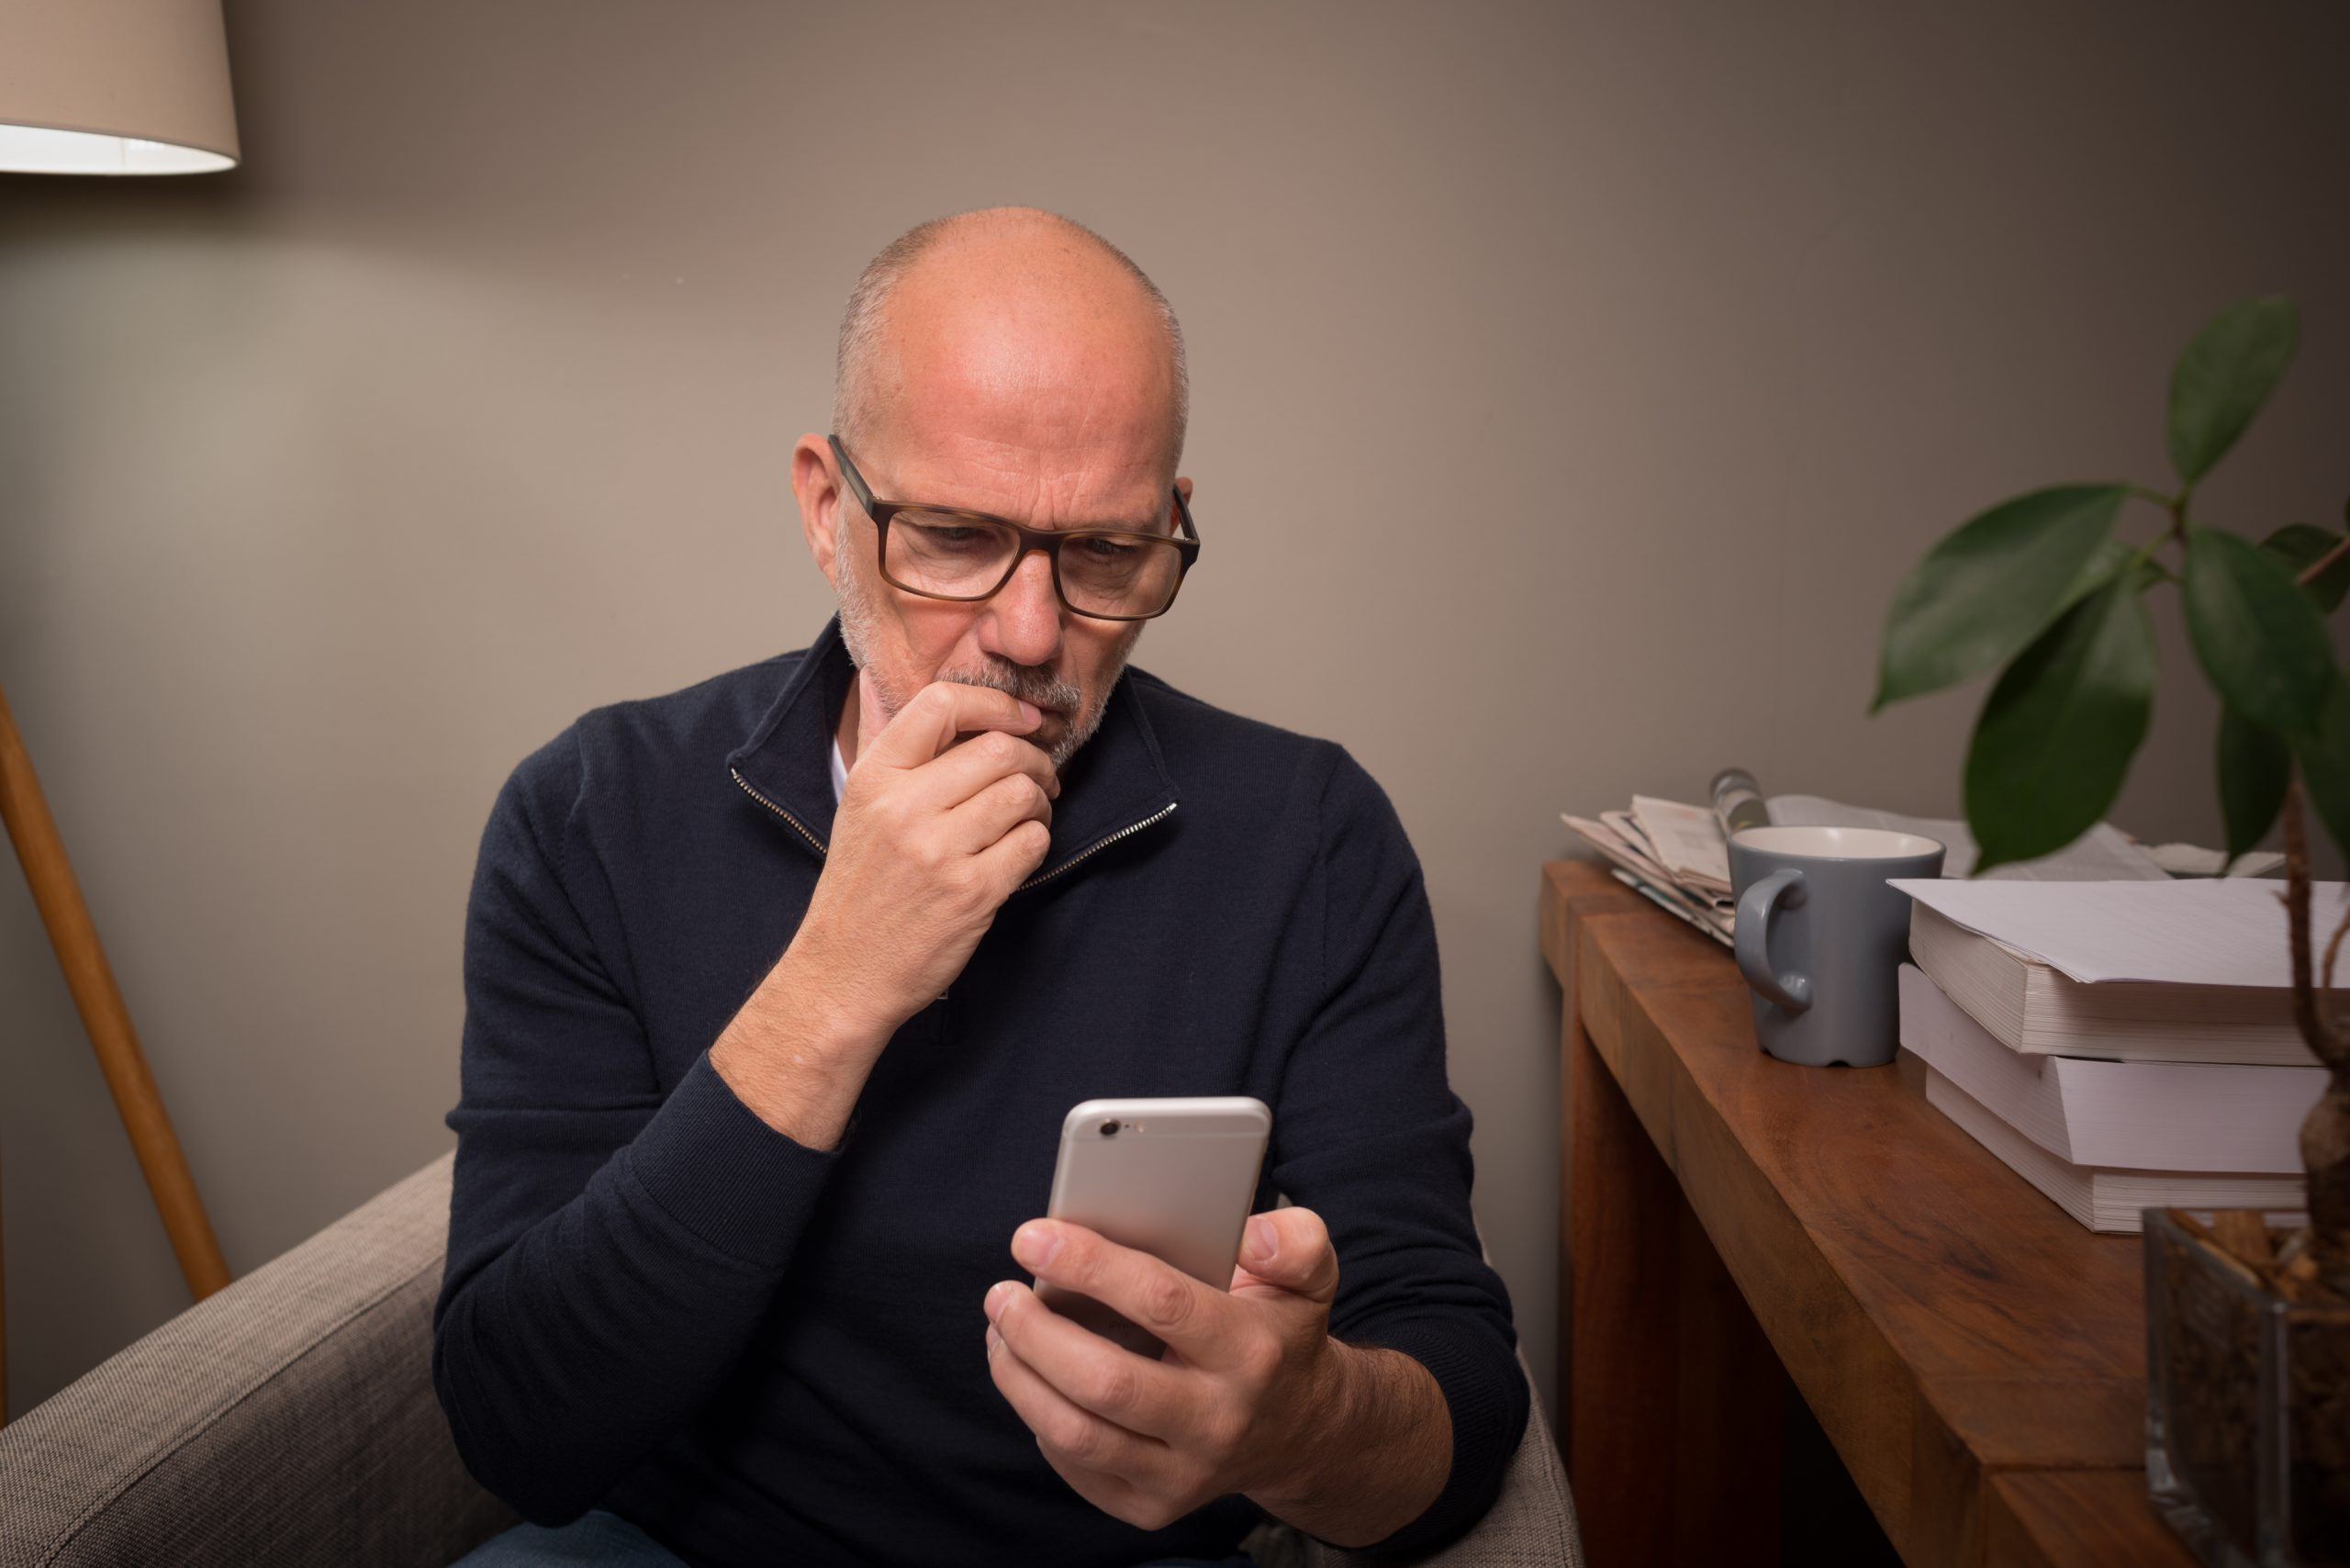 Concerned-looking man texting, meant to illustrate secure text messaging